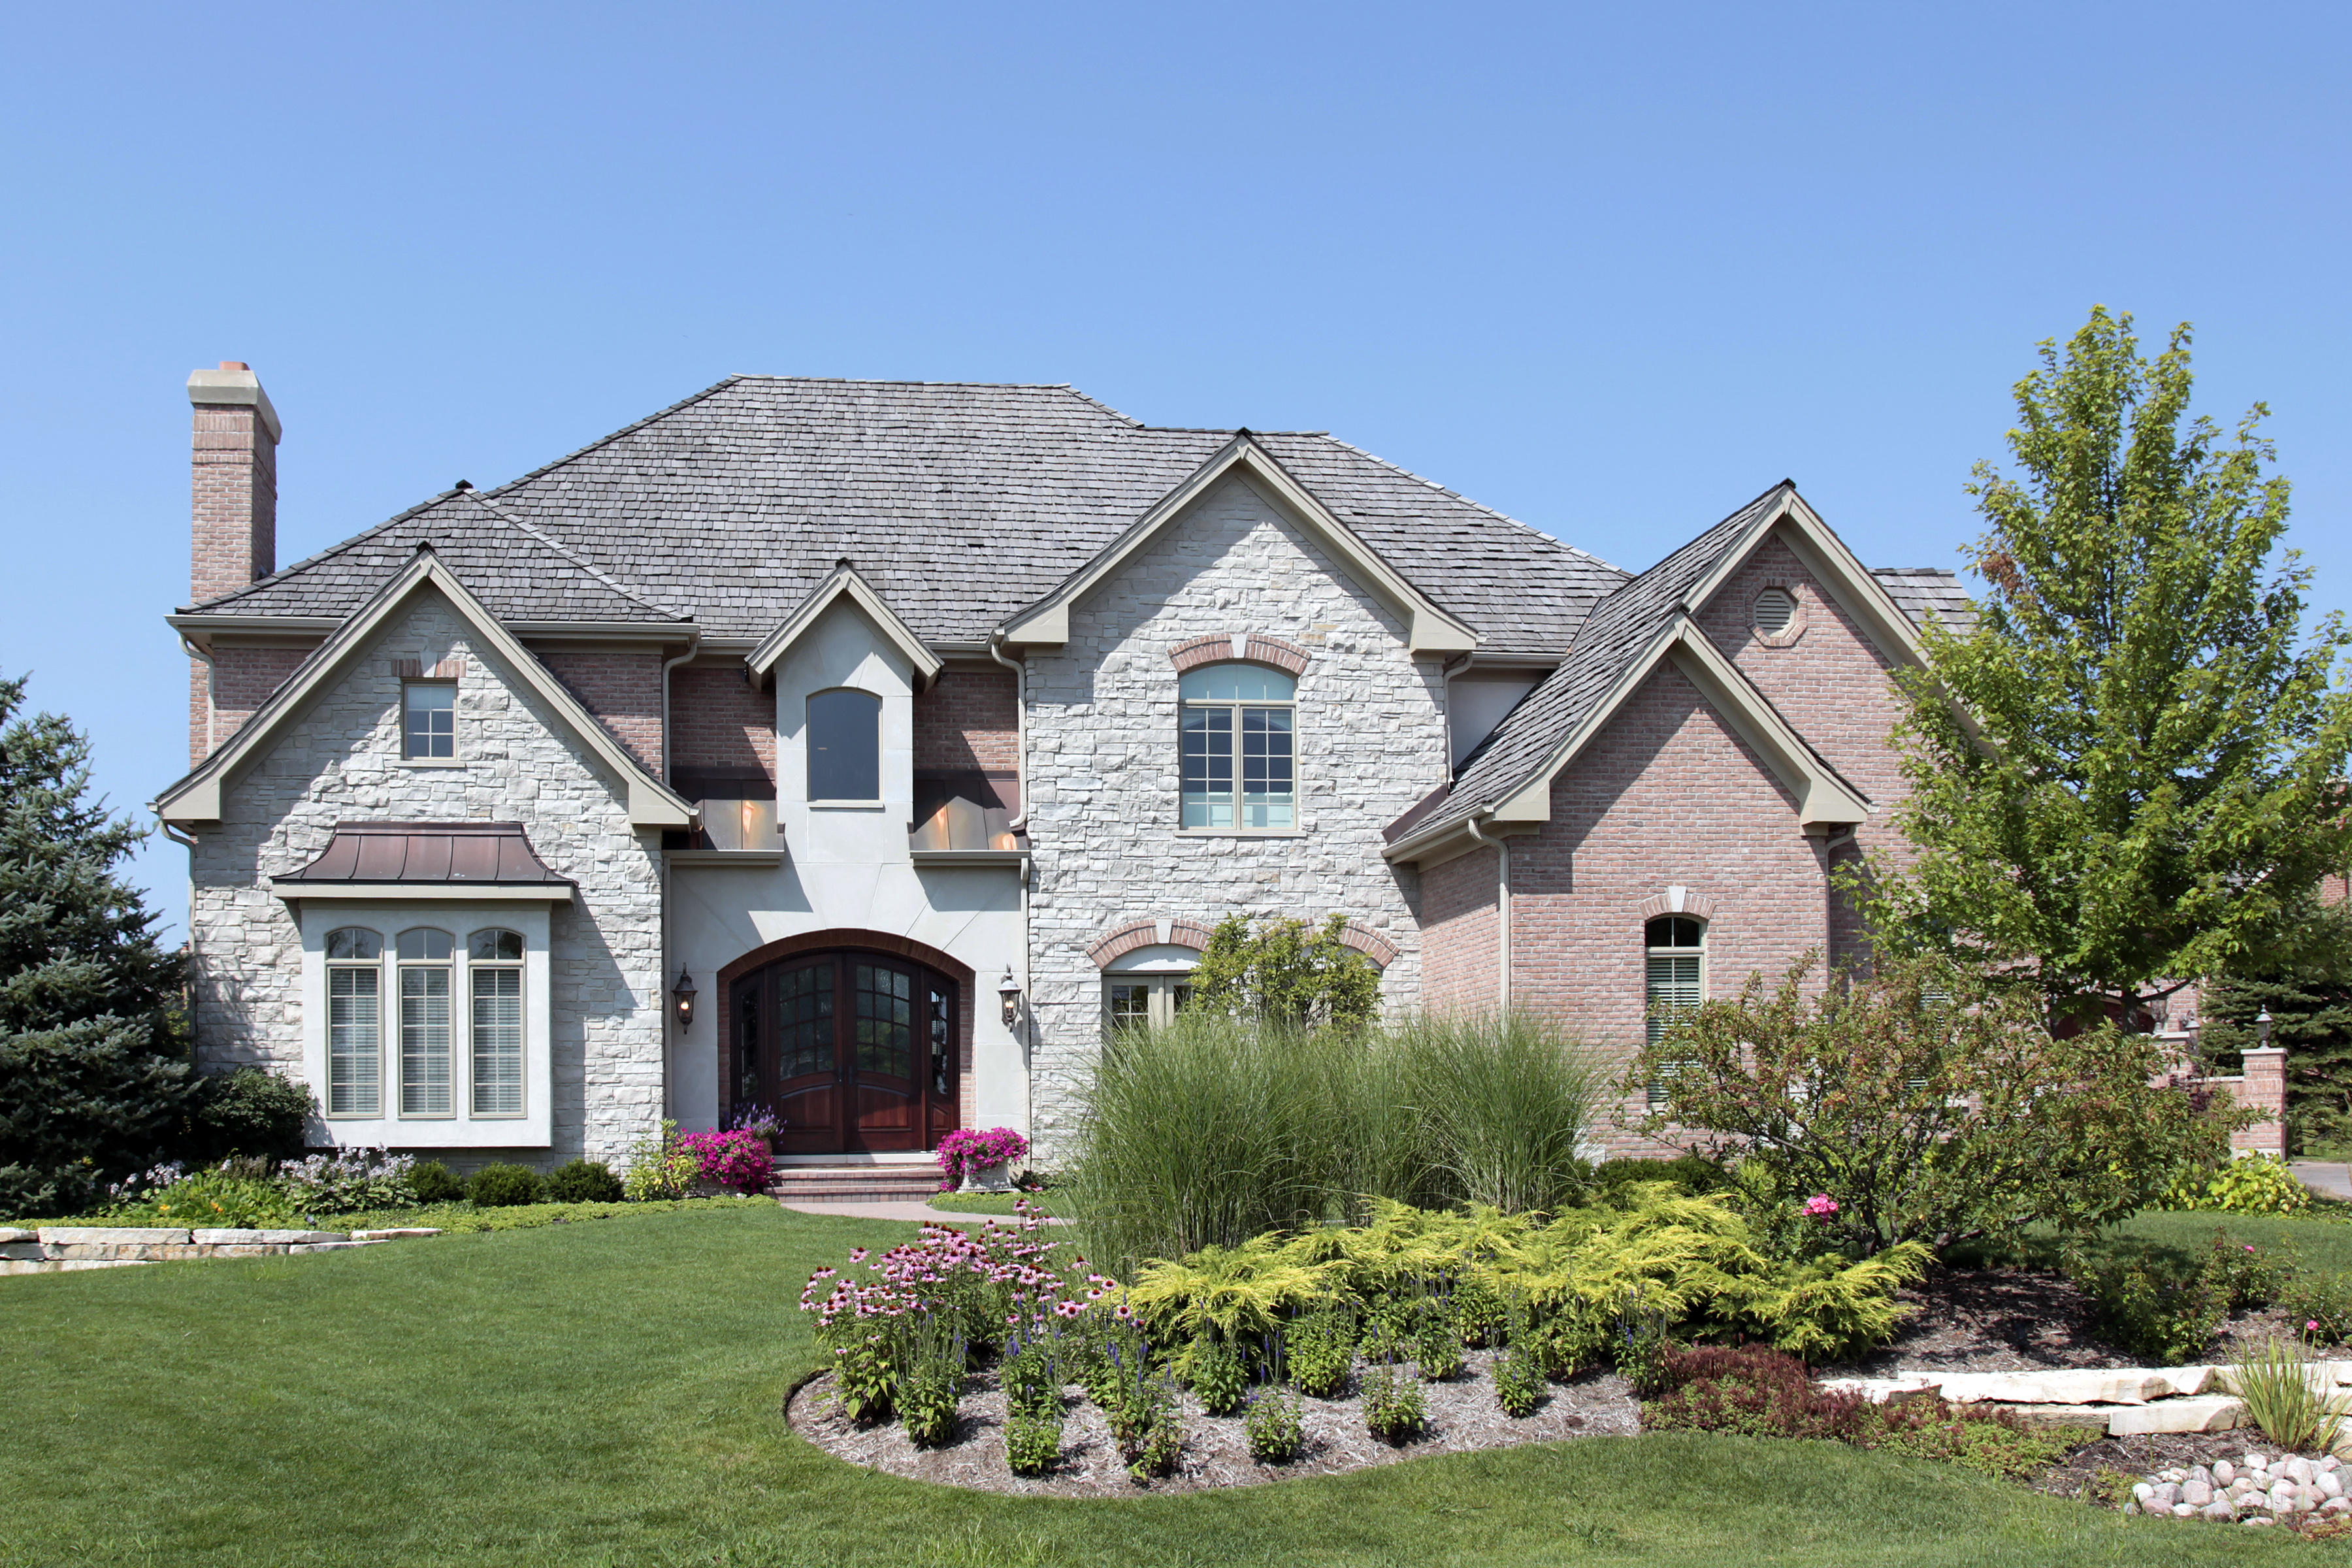 Large stone and brick home with arched doorway